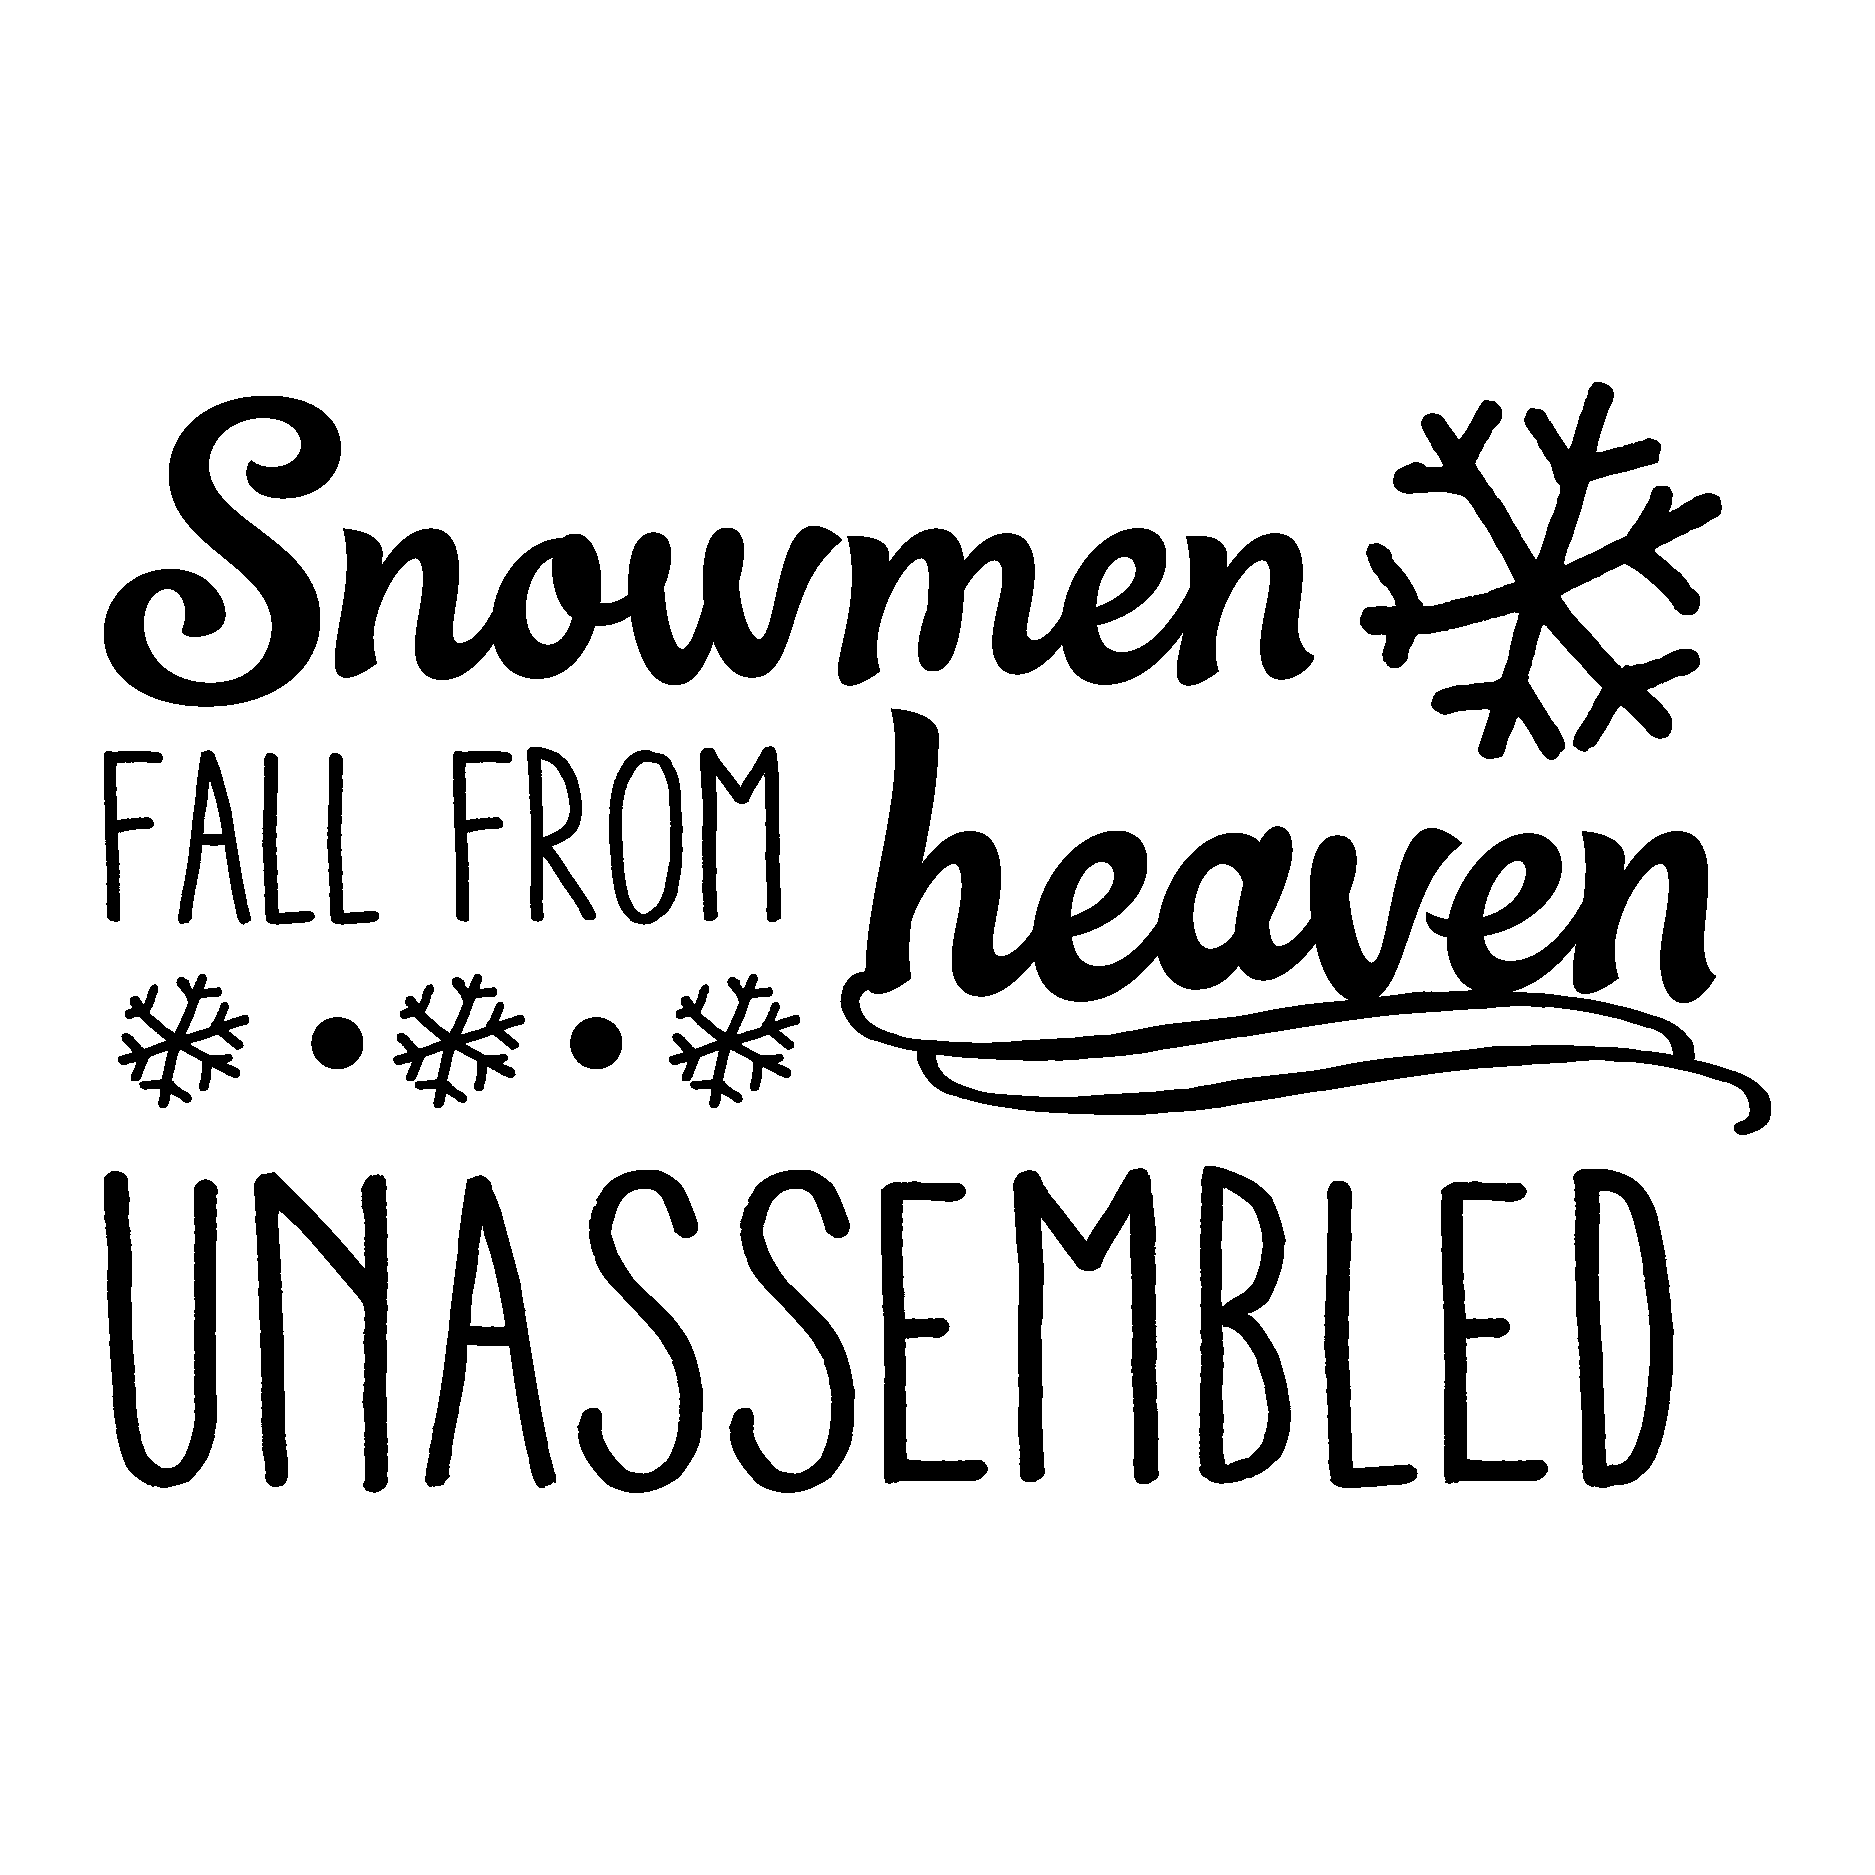 Heaven clipart inspirational. Snowmen fall from wall